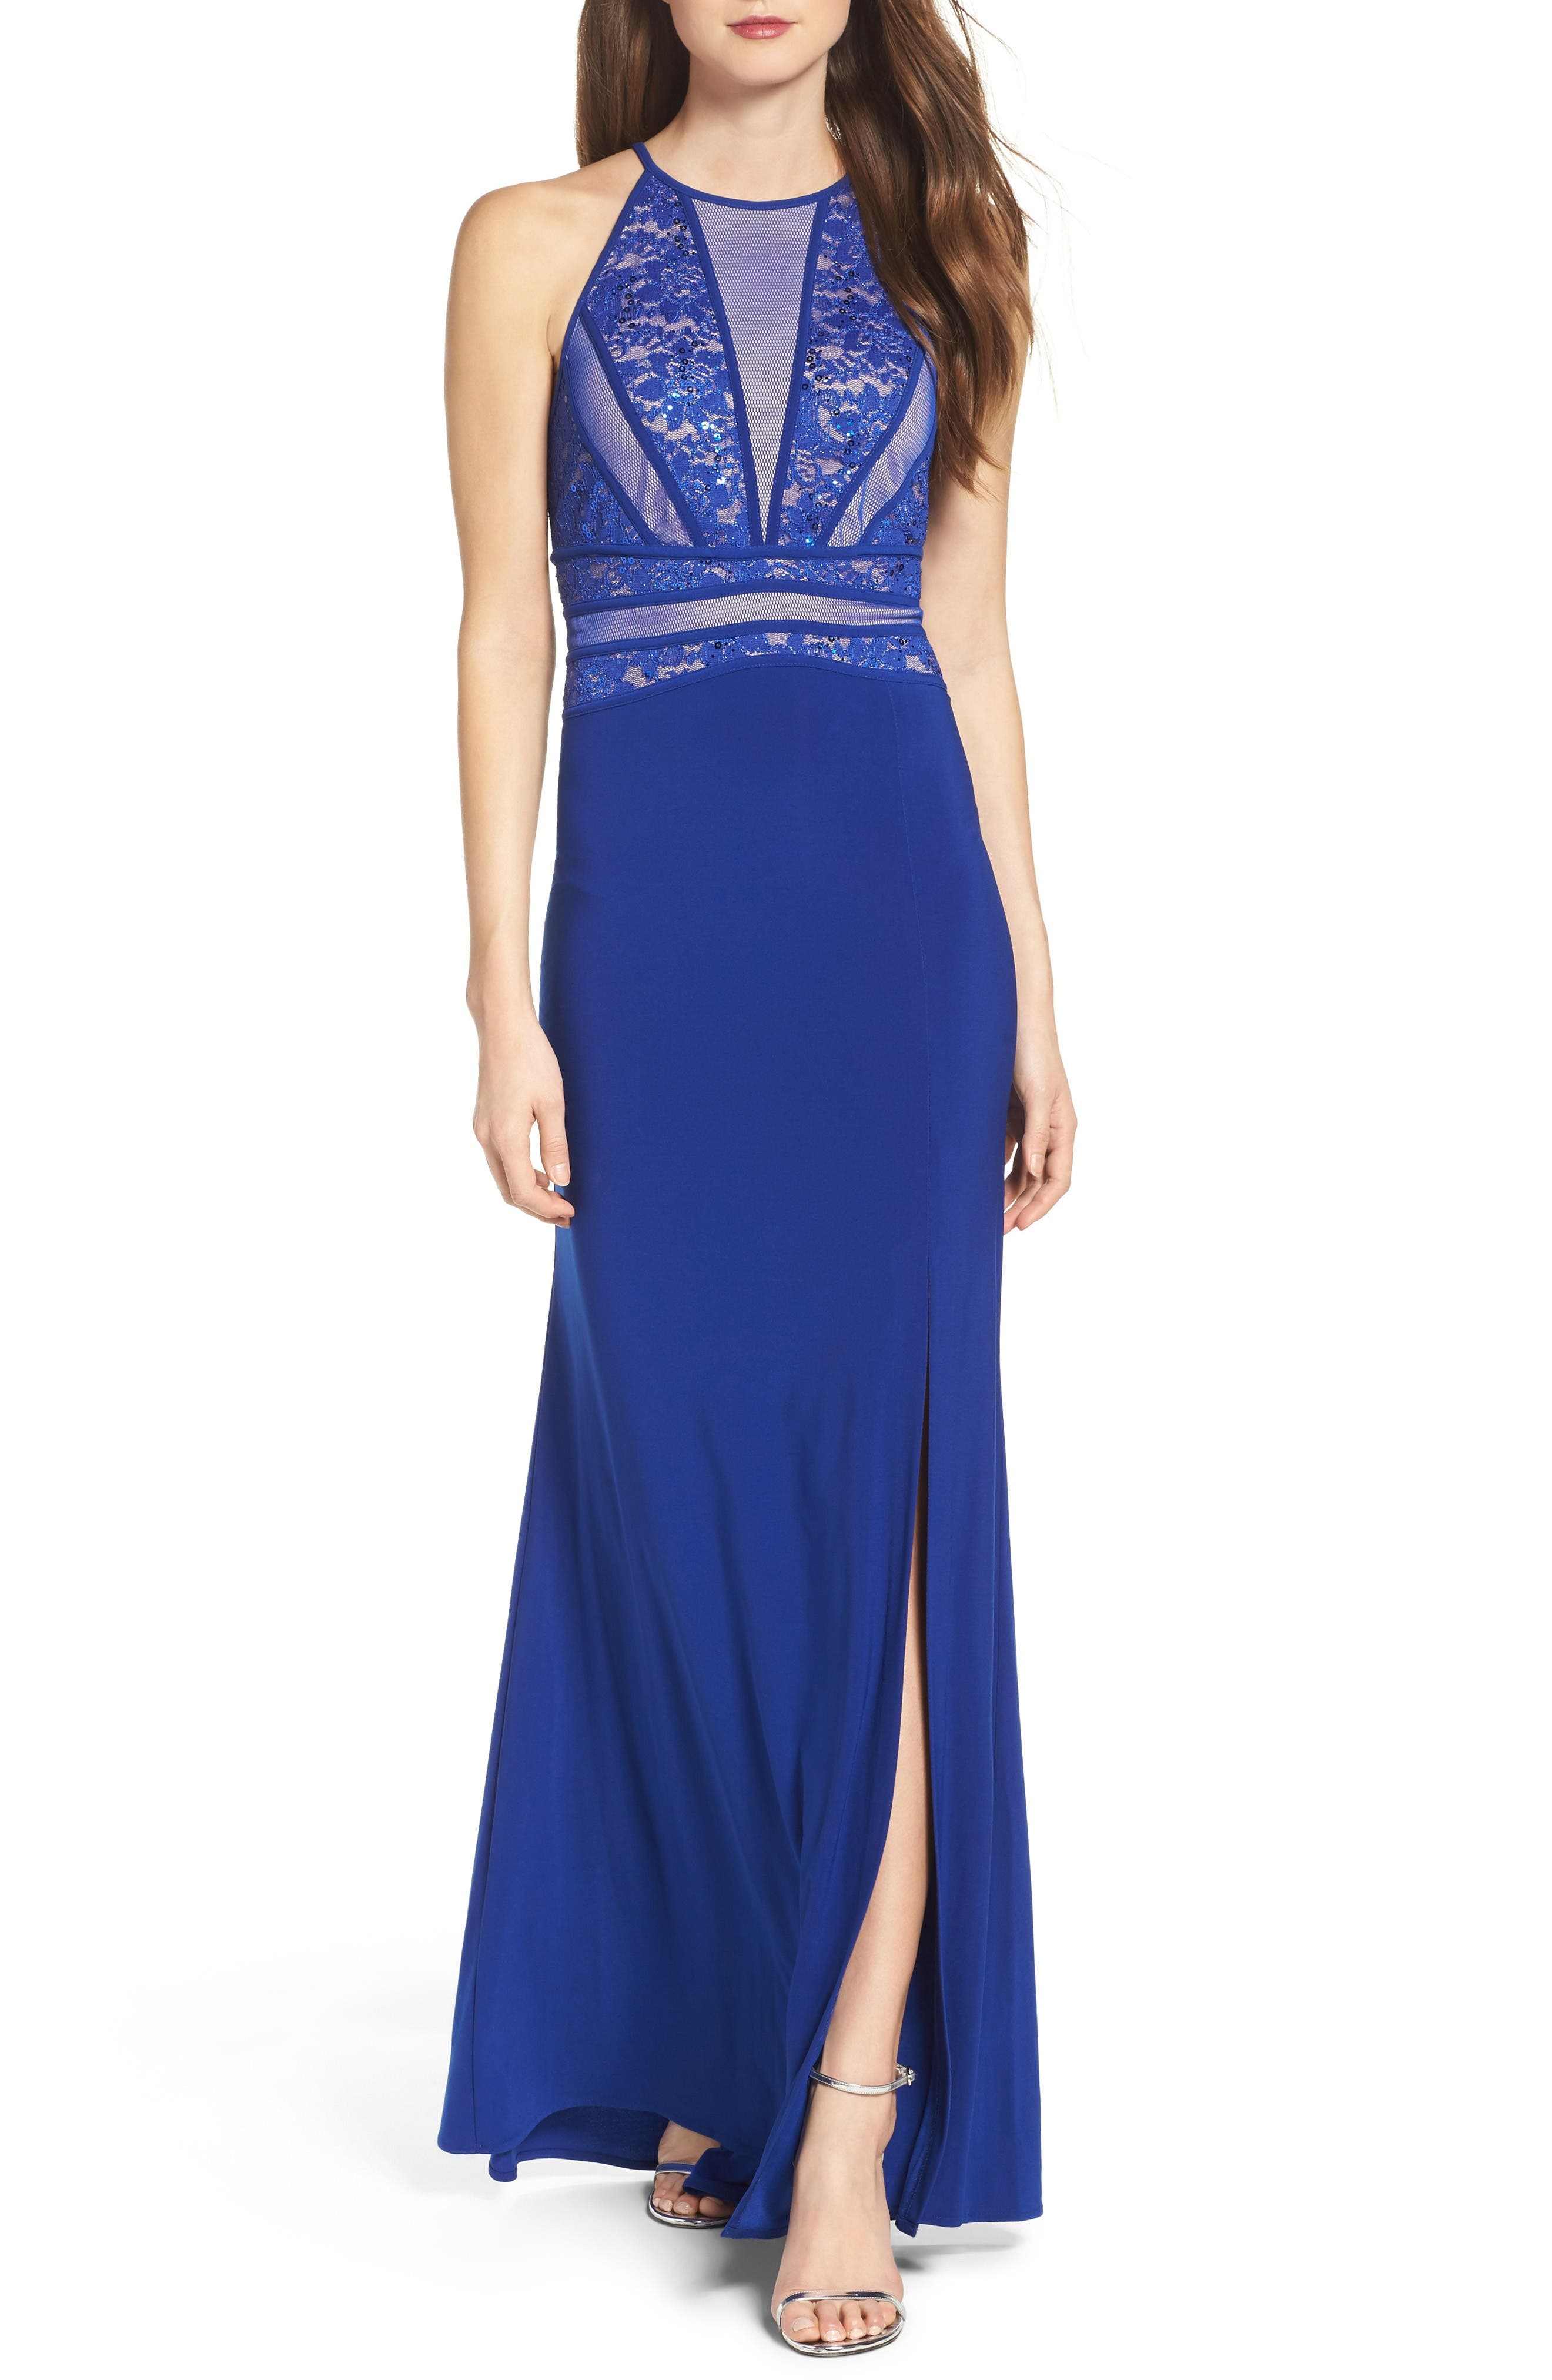 Alternate Image 1 Selected - Morgan & Co. Embellished Gown